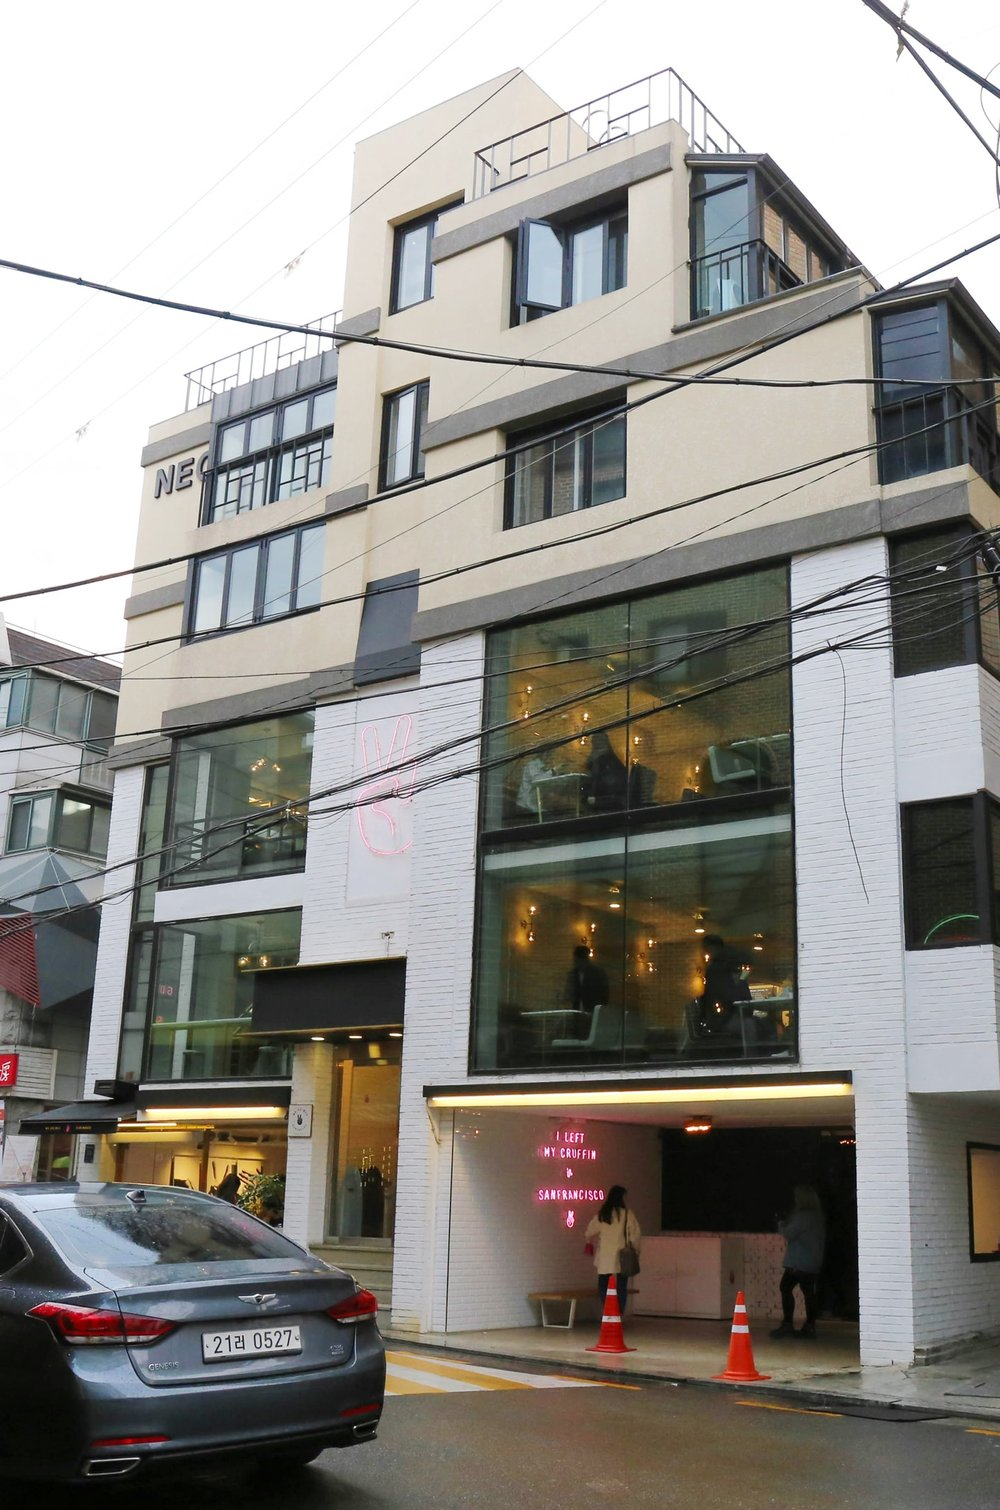 34, Apgujeong-ro 10-gilGangnam-guSeoul, 06028 - 10am to 10pm on weekdays, and 11pm on weekendsClosest Train station : Sinsa